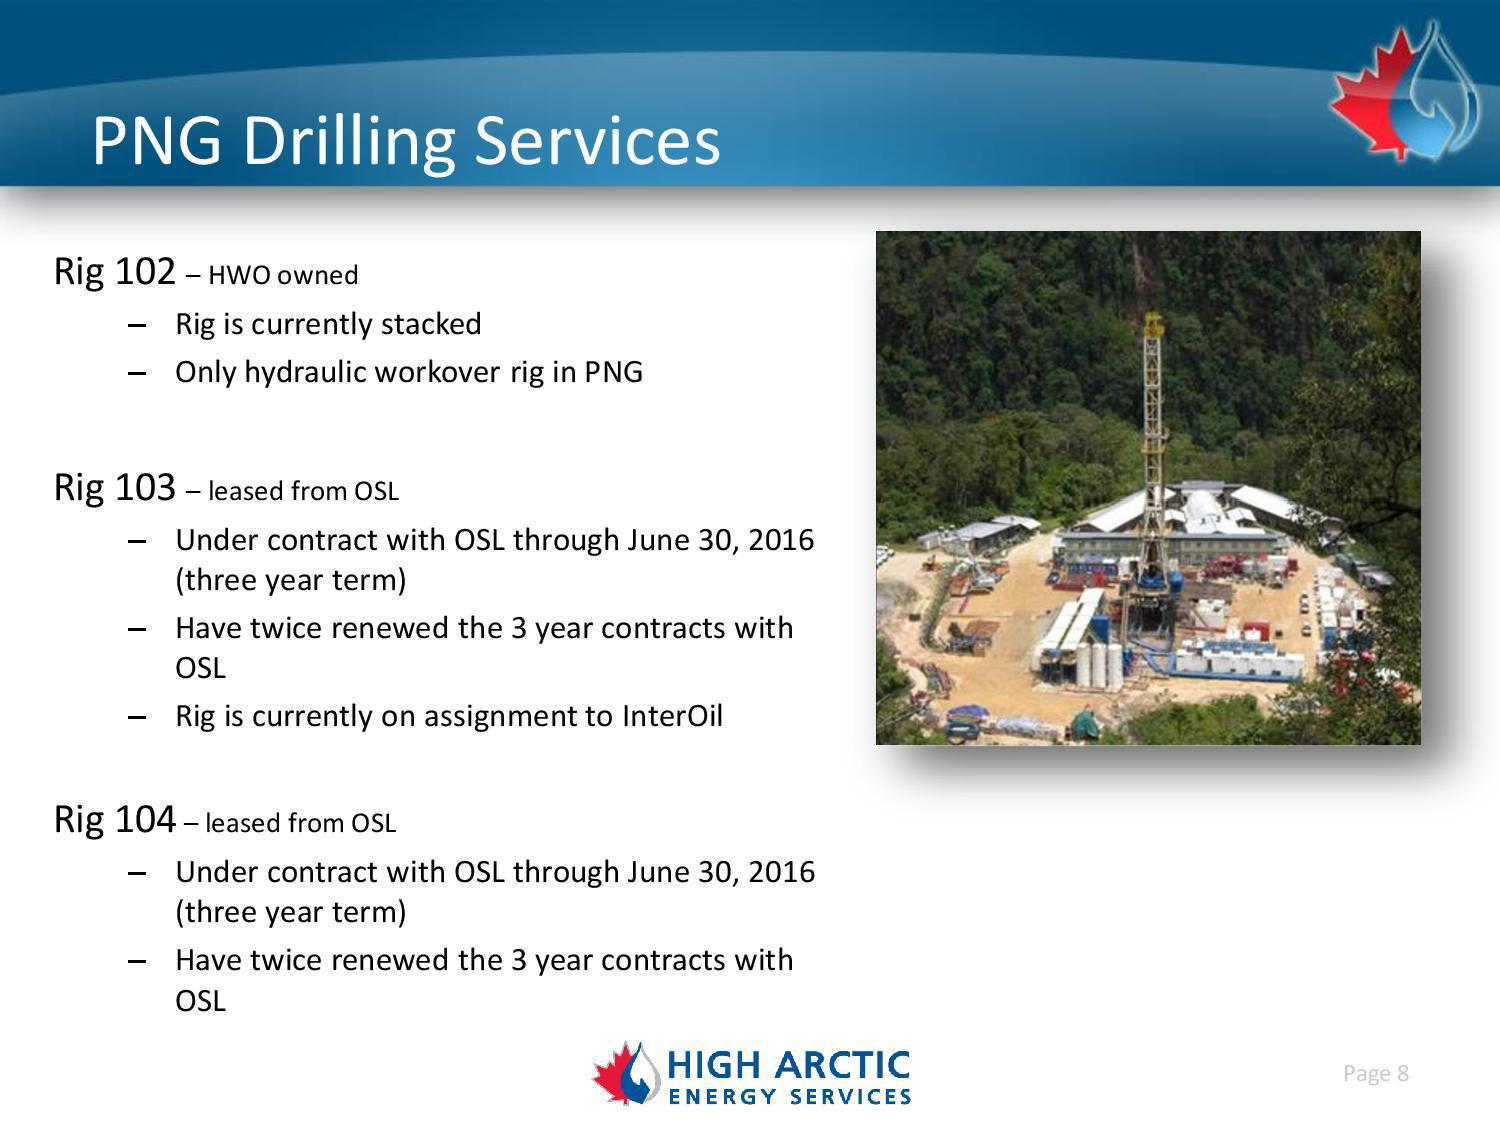 Sell Key Energy Services And Buy High Arctic Energy Services.